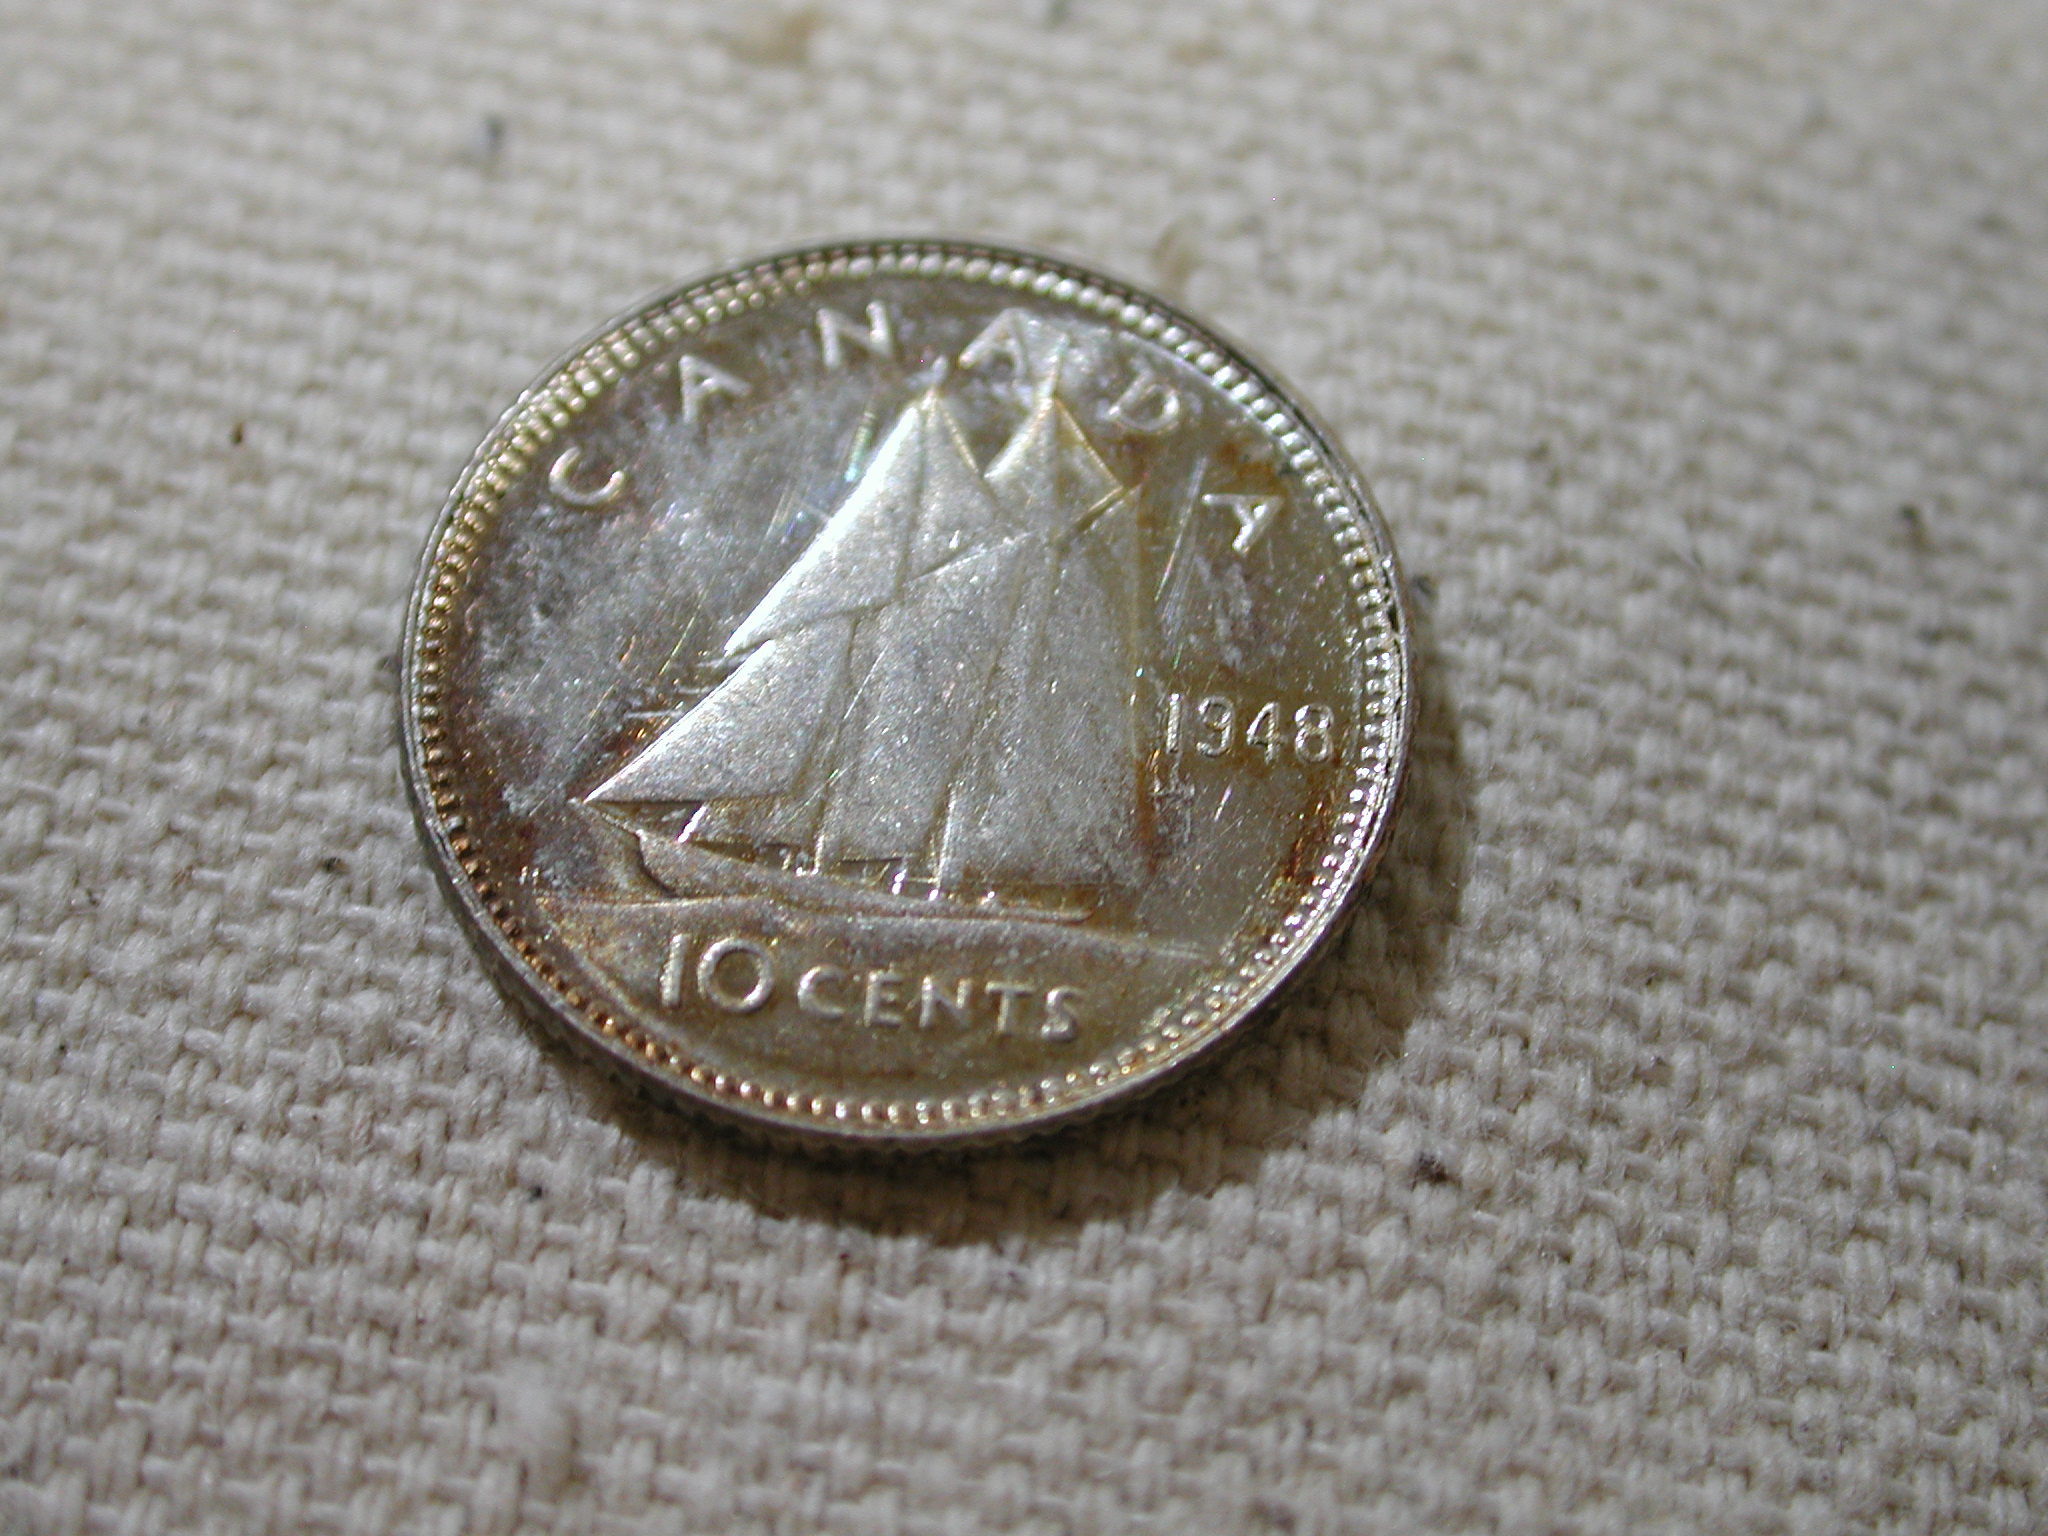 1984 CANADA 10 CENTS PROOF-LIKE DIME COIN